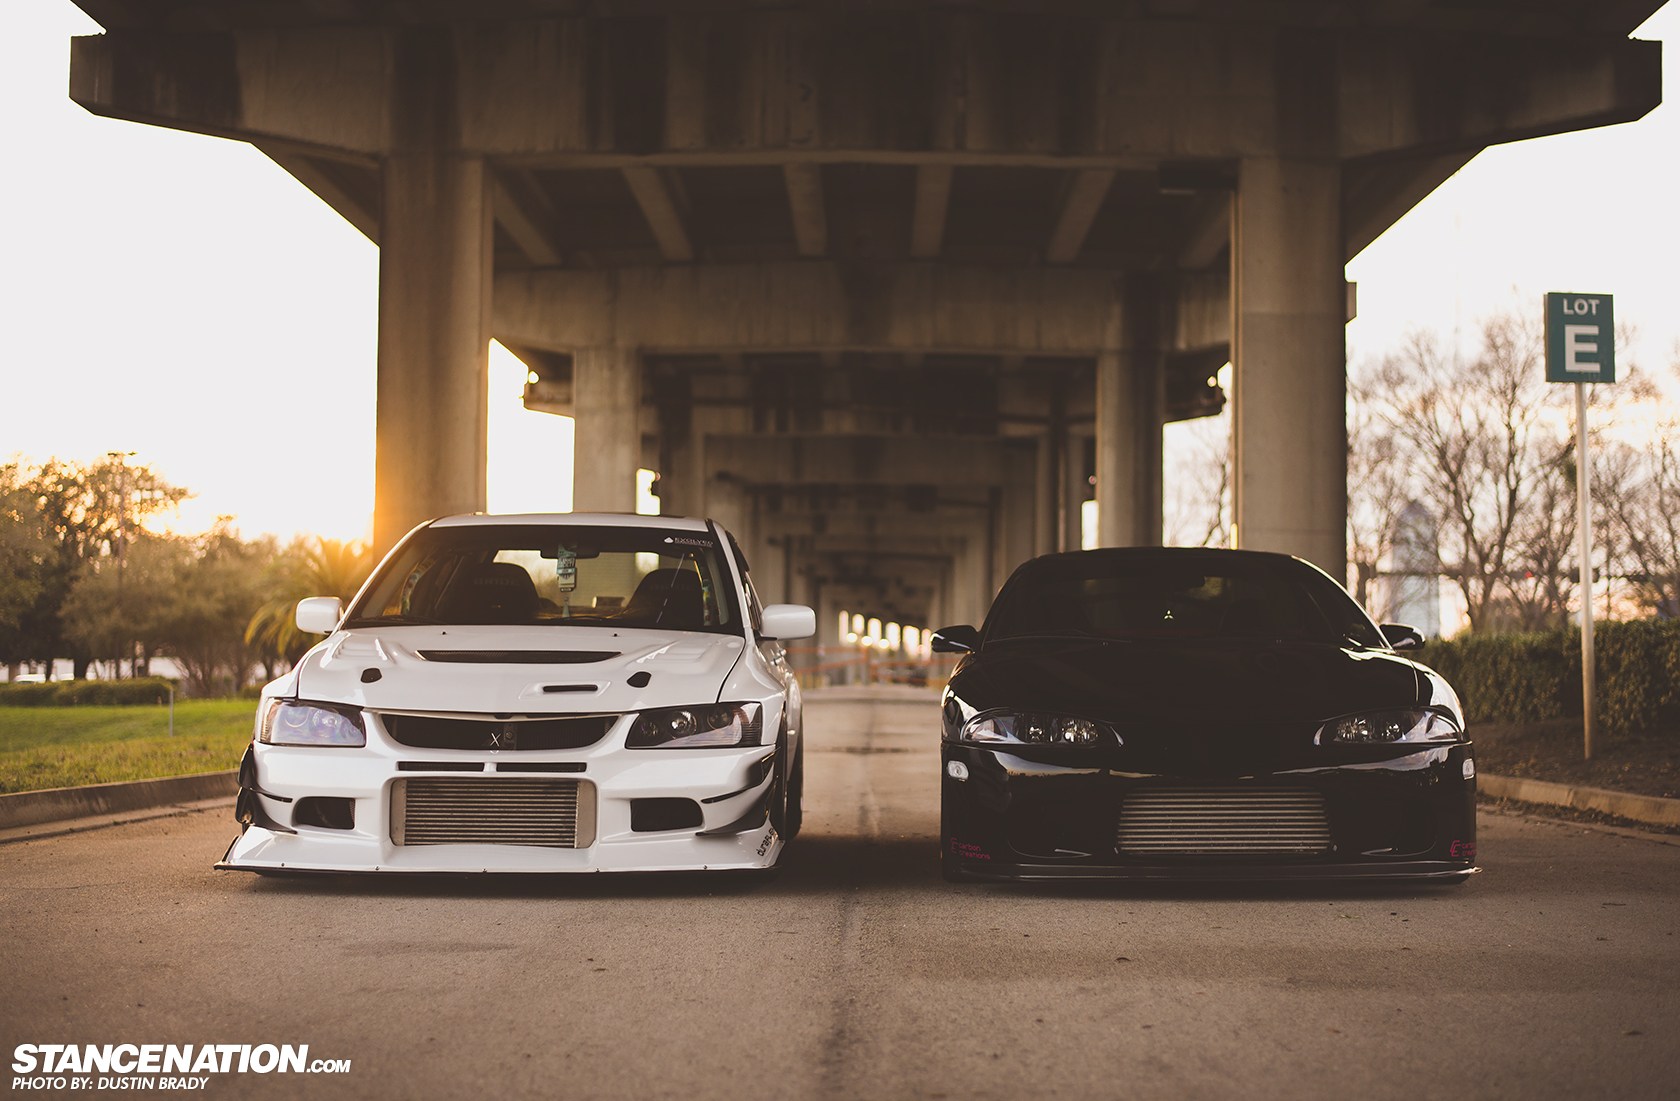 His & Hers // Justin & Jax's Mean EVO & Eclipse. | StanceNation™ // Form > Function